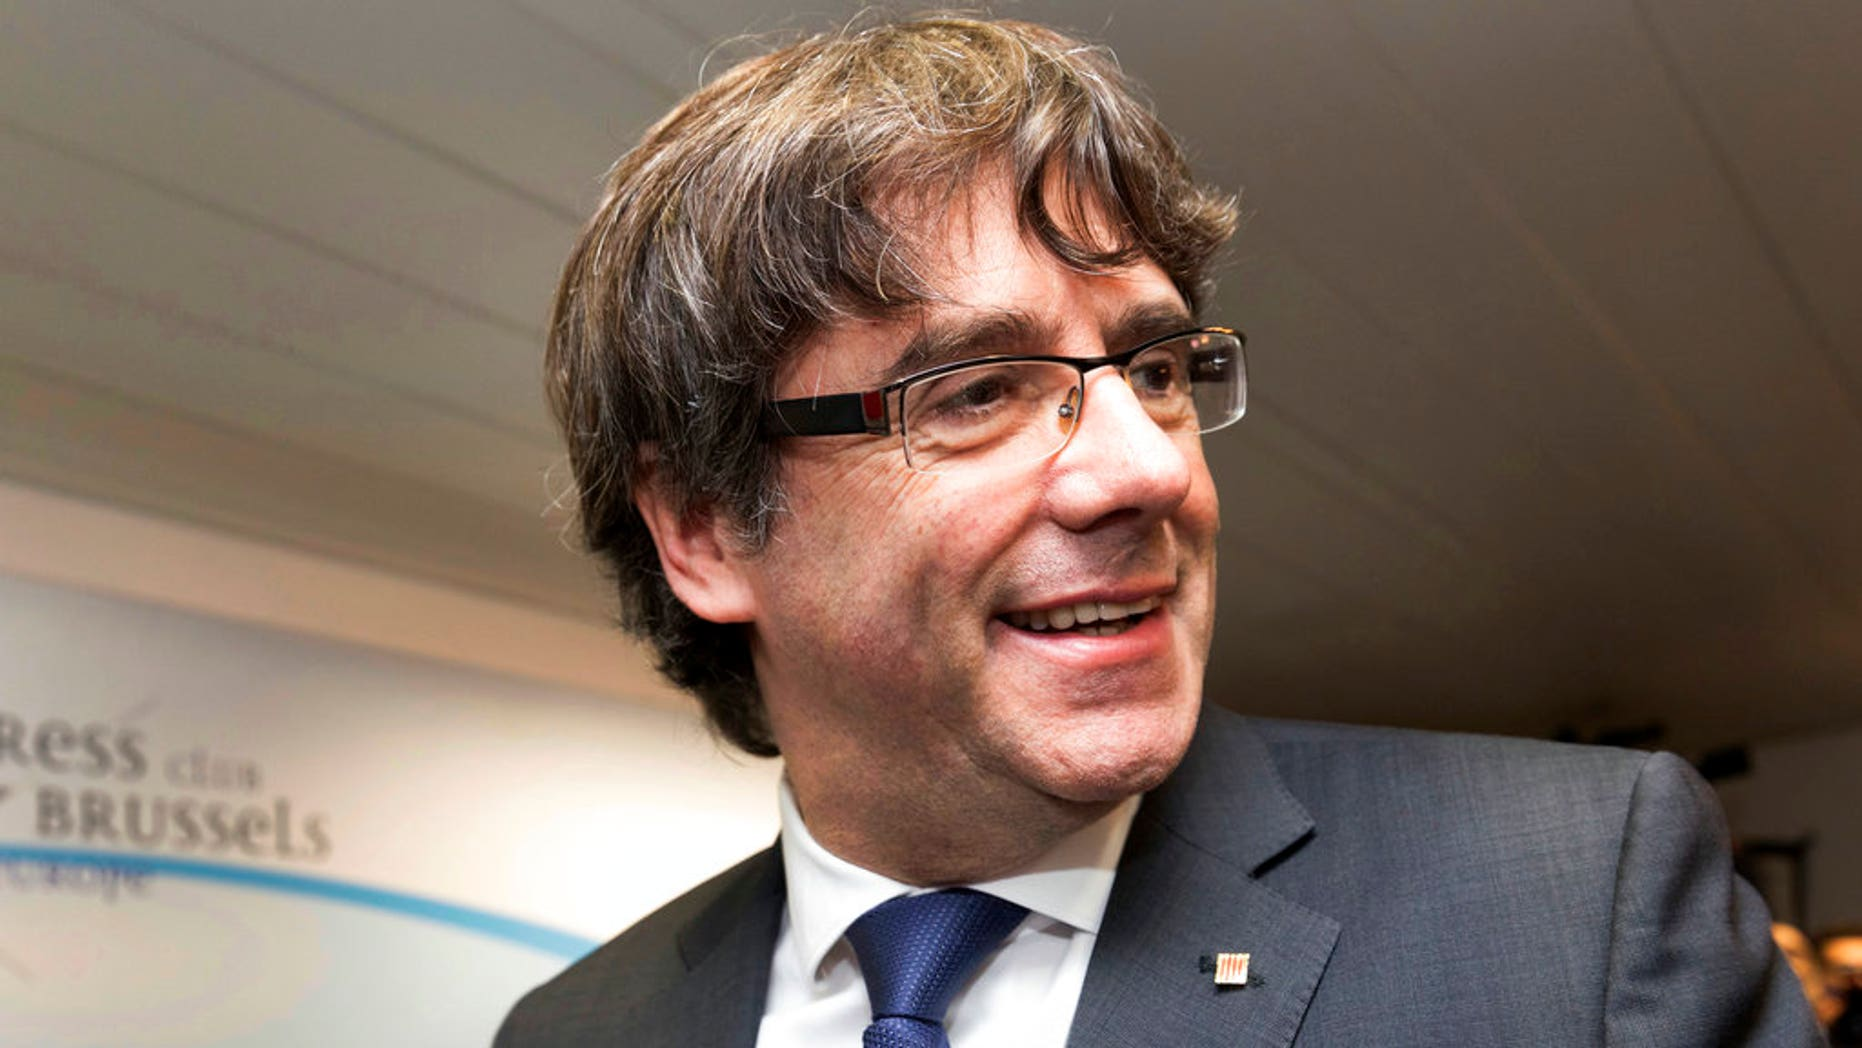 Ousted Catalan President Carles Puigdemont reportedly turned himself in to police in Brussels on Sunday.